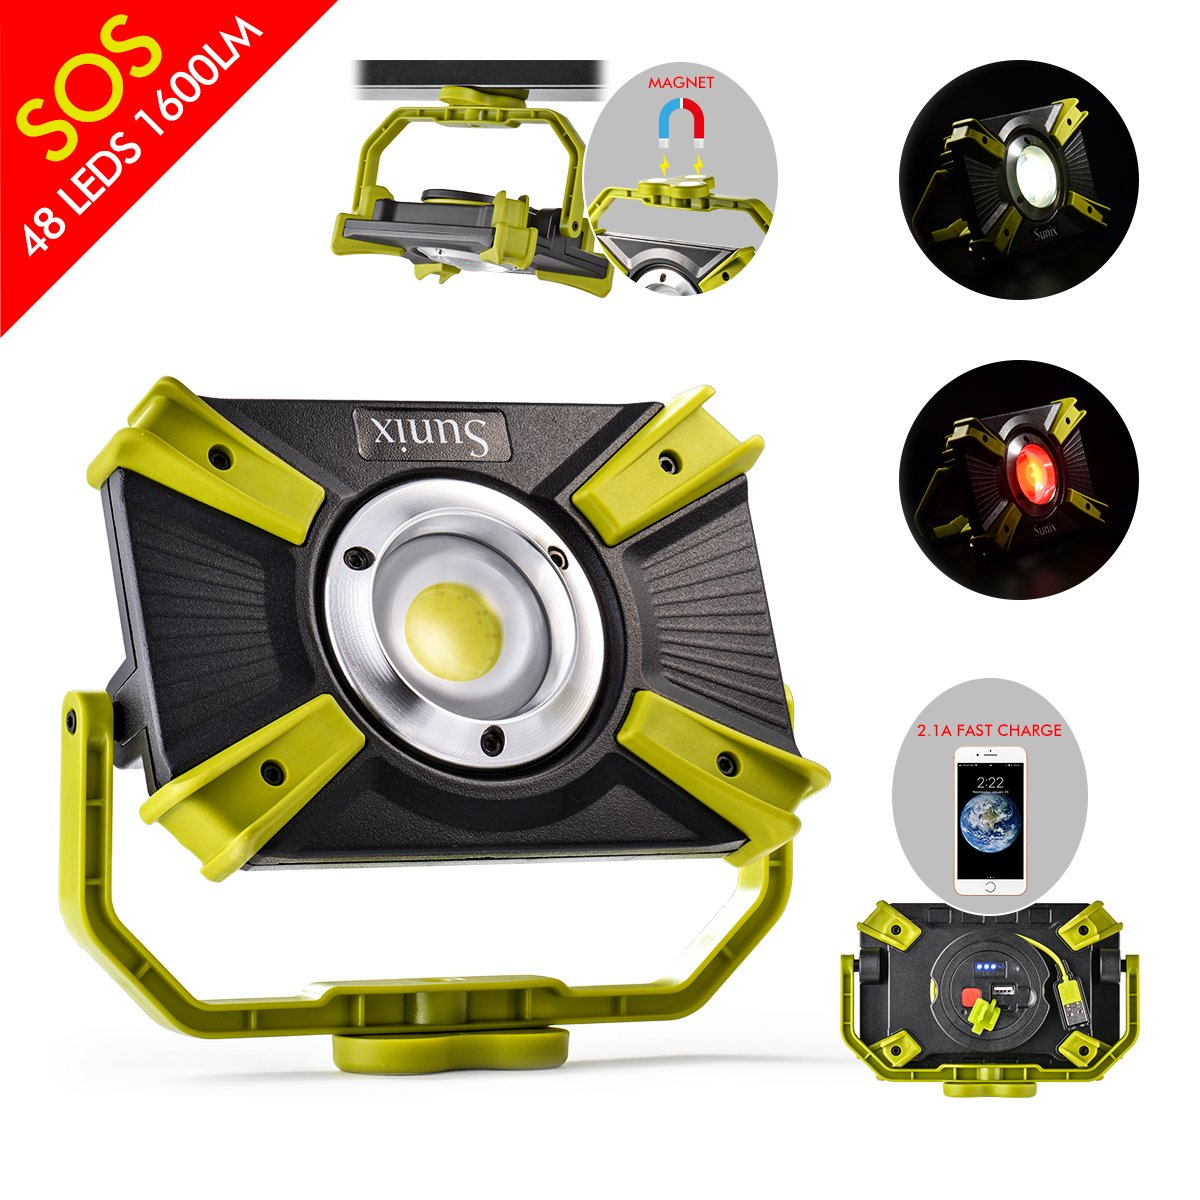 LED Work Light 48LEDS 1600LM 20W Rechargeable Portable with Magnet Clamp Stand Cordless Tac Light SOS Mode Spotlight Camping Emergency 2.1A Fast Charging for Truck Tractor Workshop Construction Site